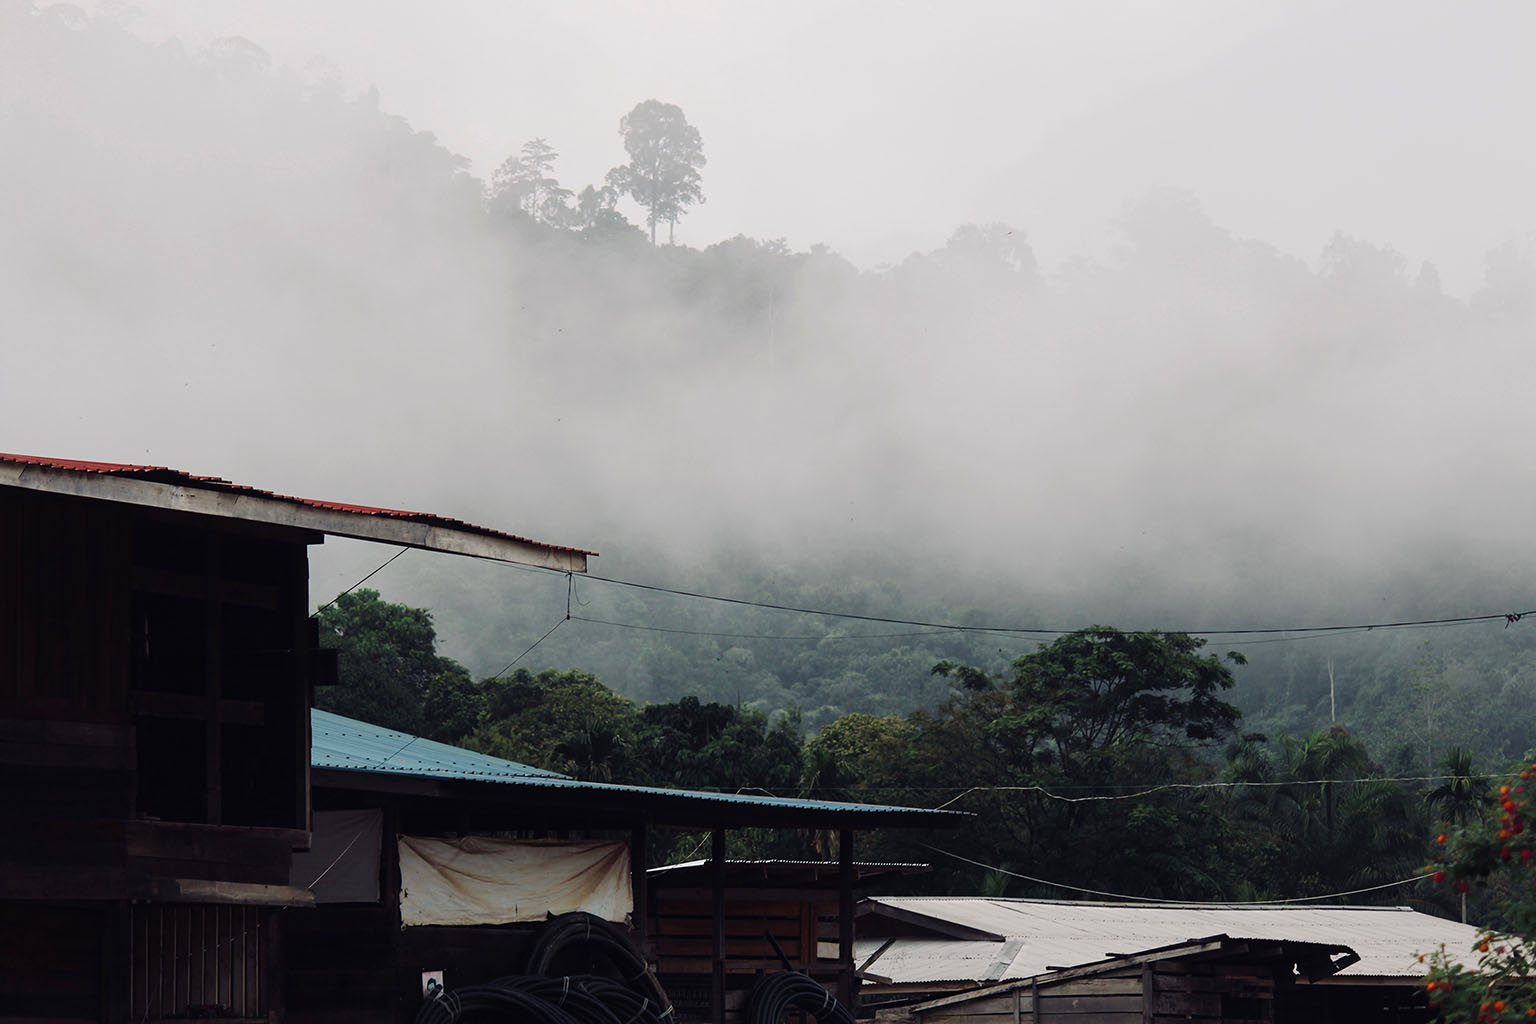 Long Siut, an Indigenous village, in July 2018. Photo credit: Fiona McAlpine of The Borneo Project